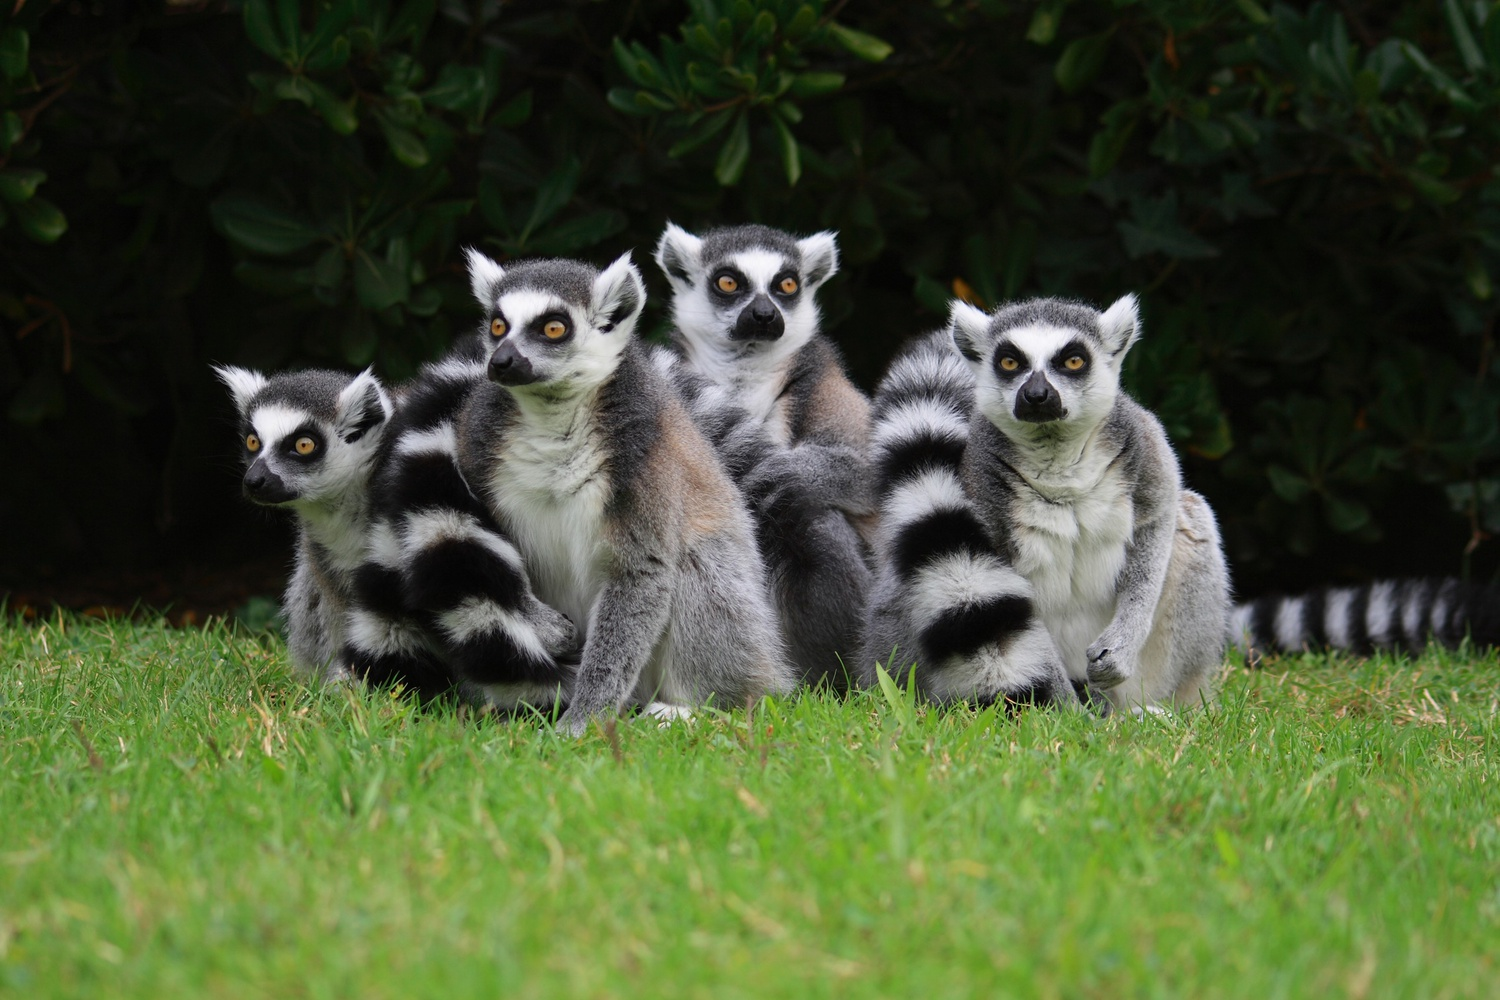 Lemurs at Lignano Zoo